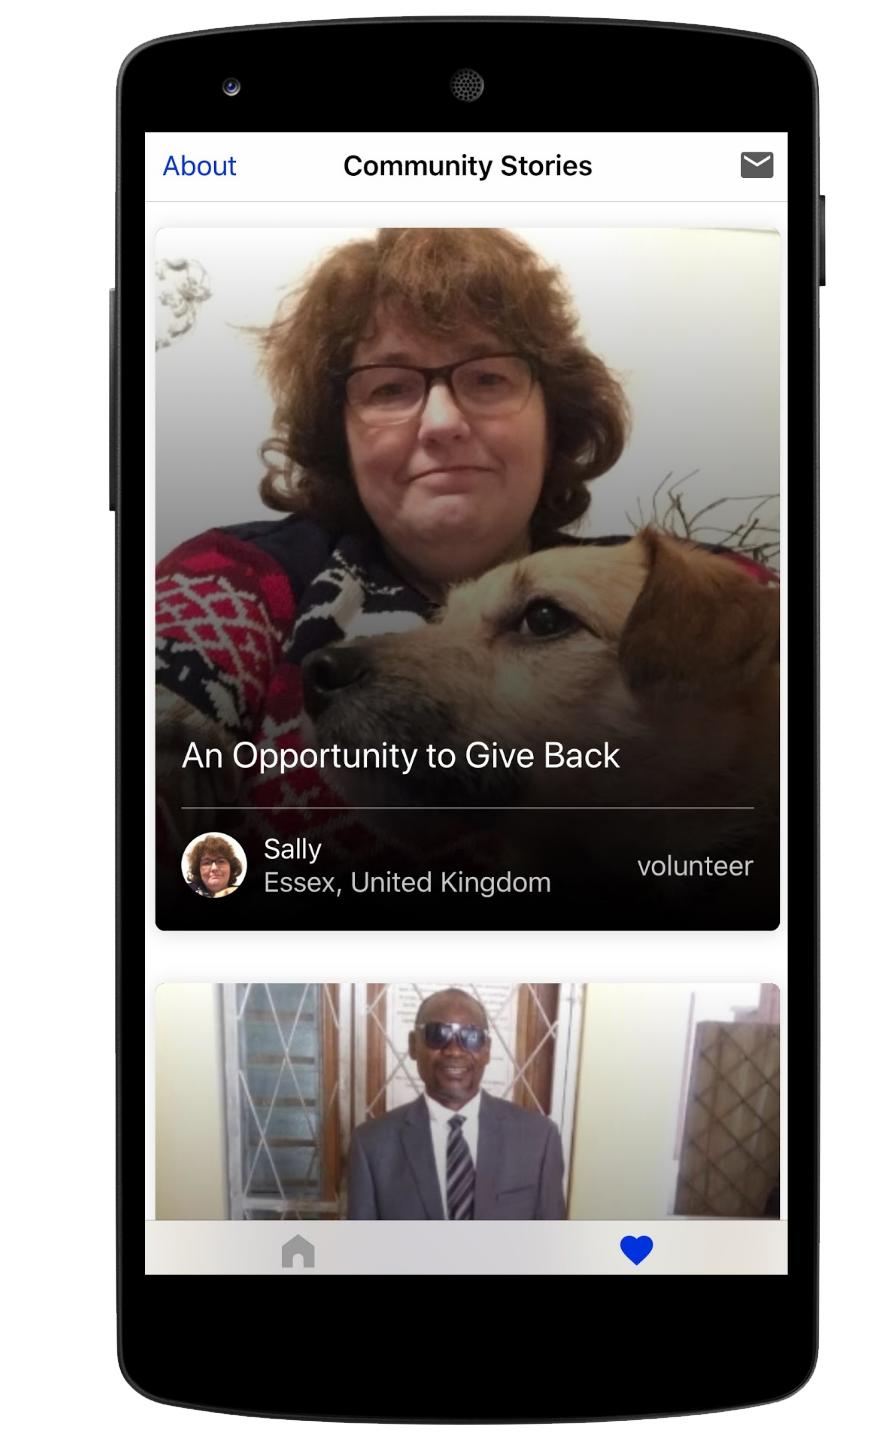 Be My Eyes connects vision-impaired individuals with a vast network of volunteers to help with daily tasks through video calls.